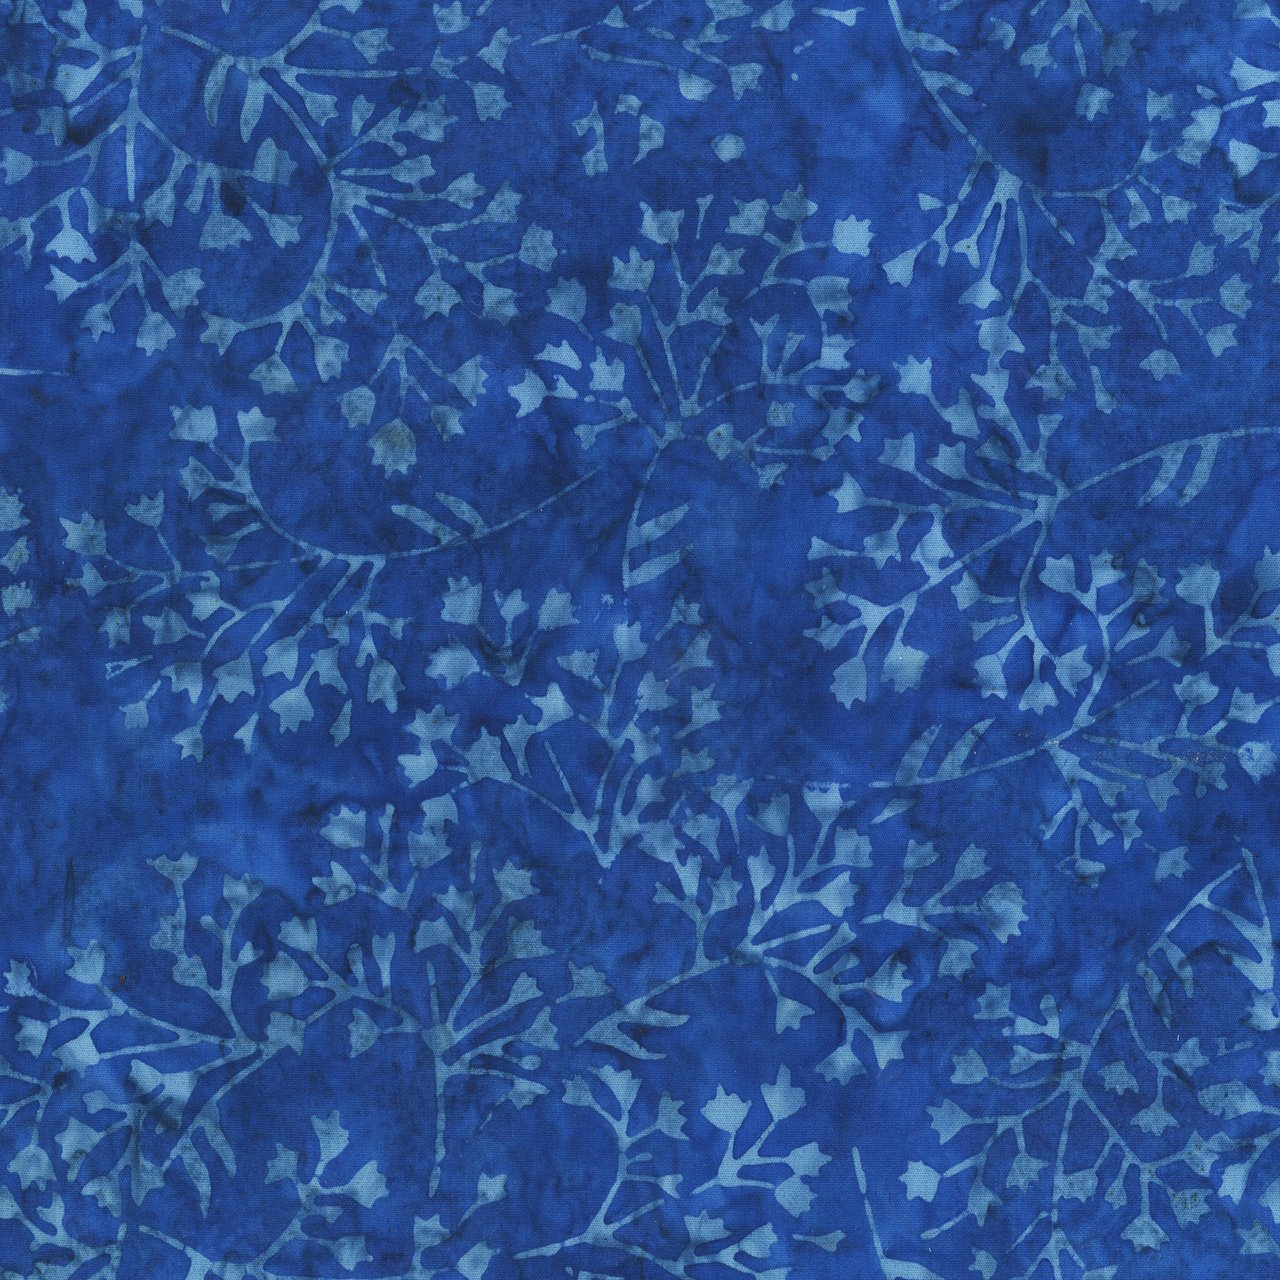 Fat Quarter - Baby's Breath, Ultramarine